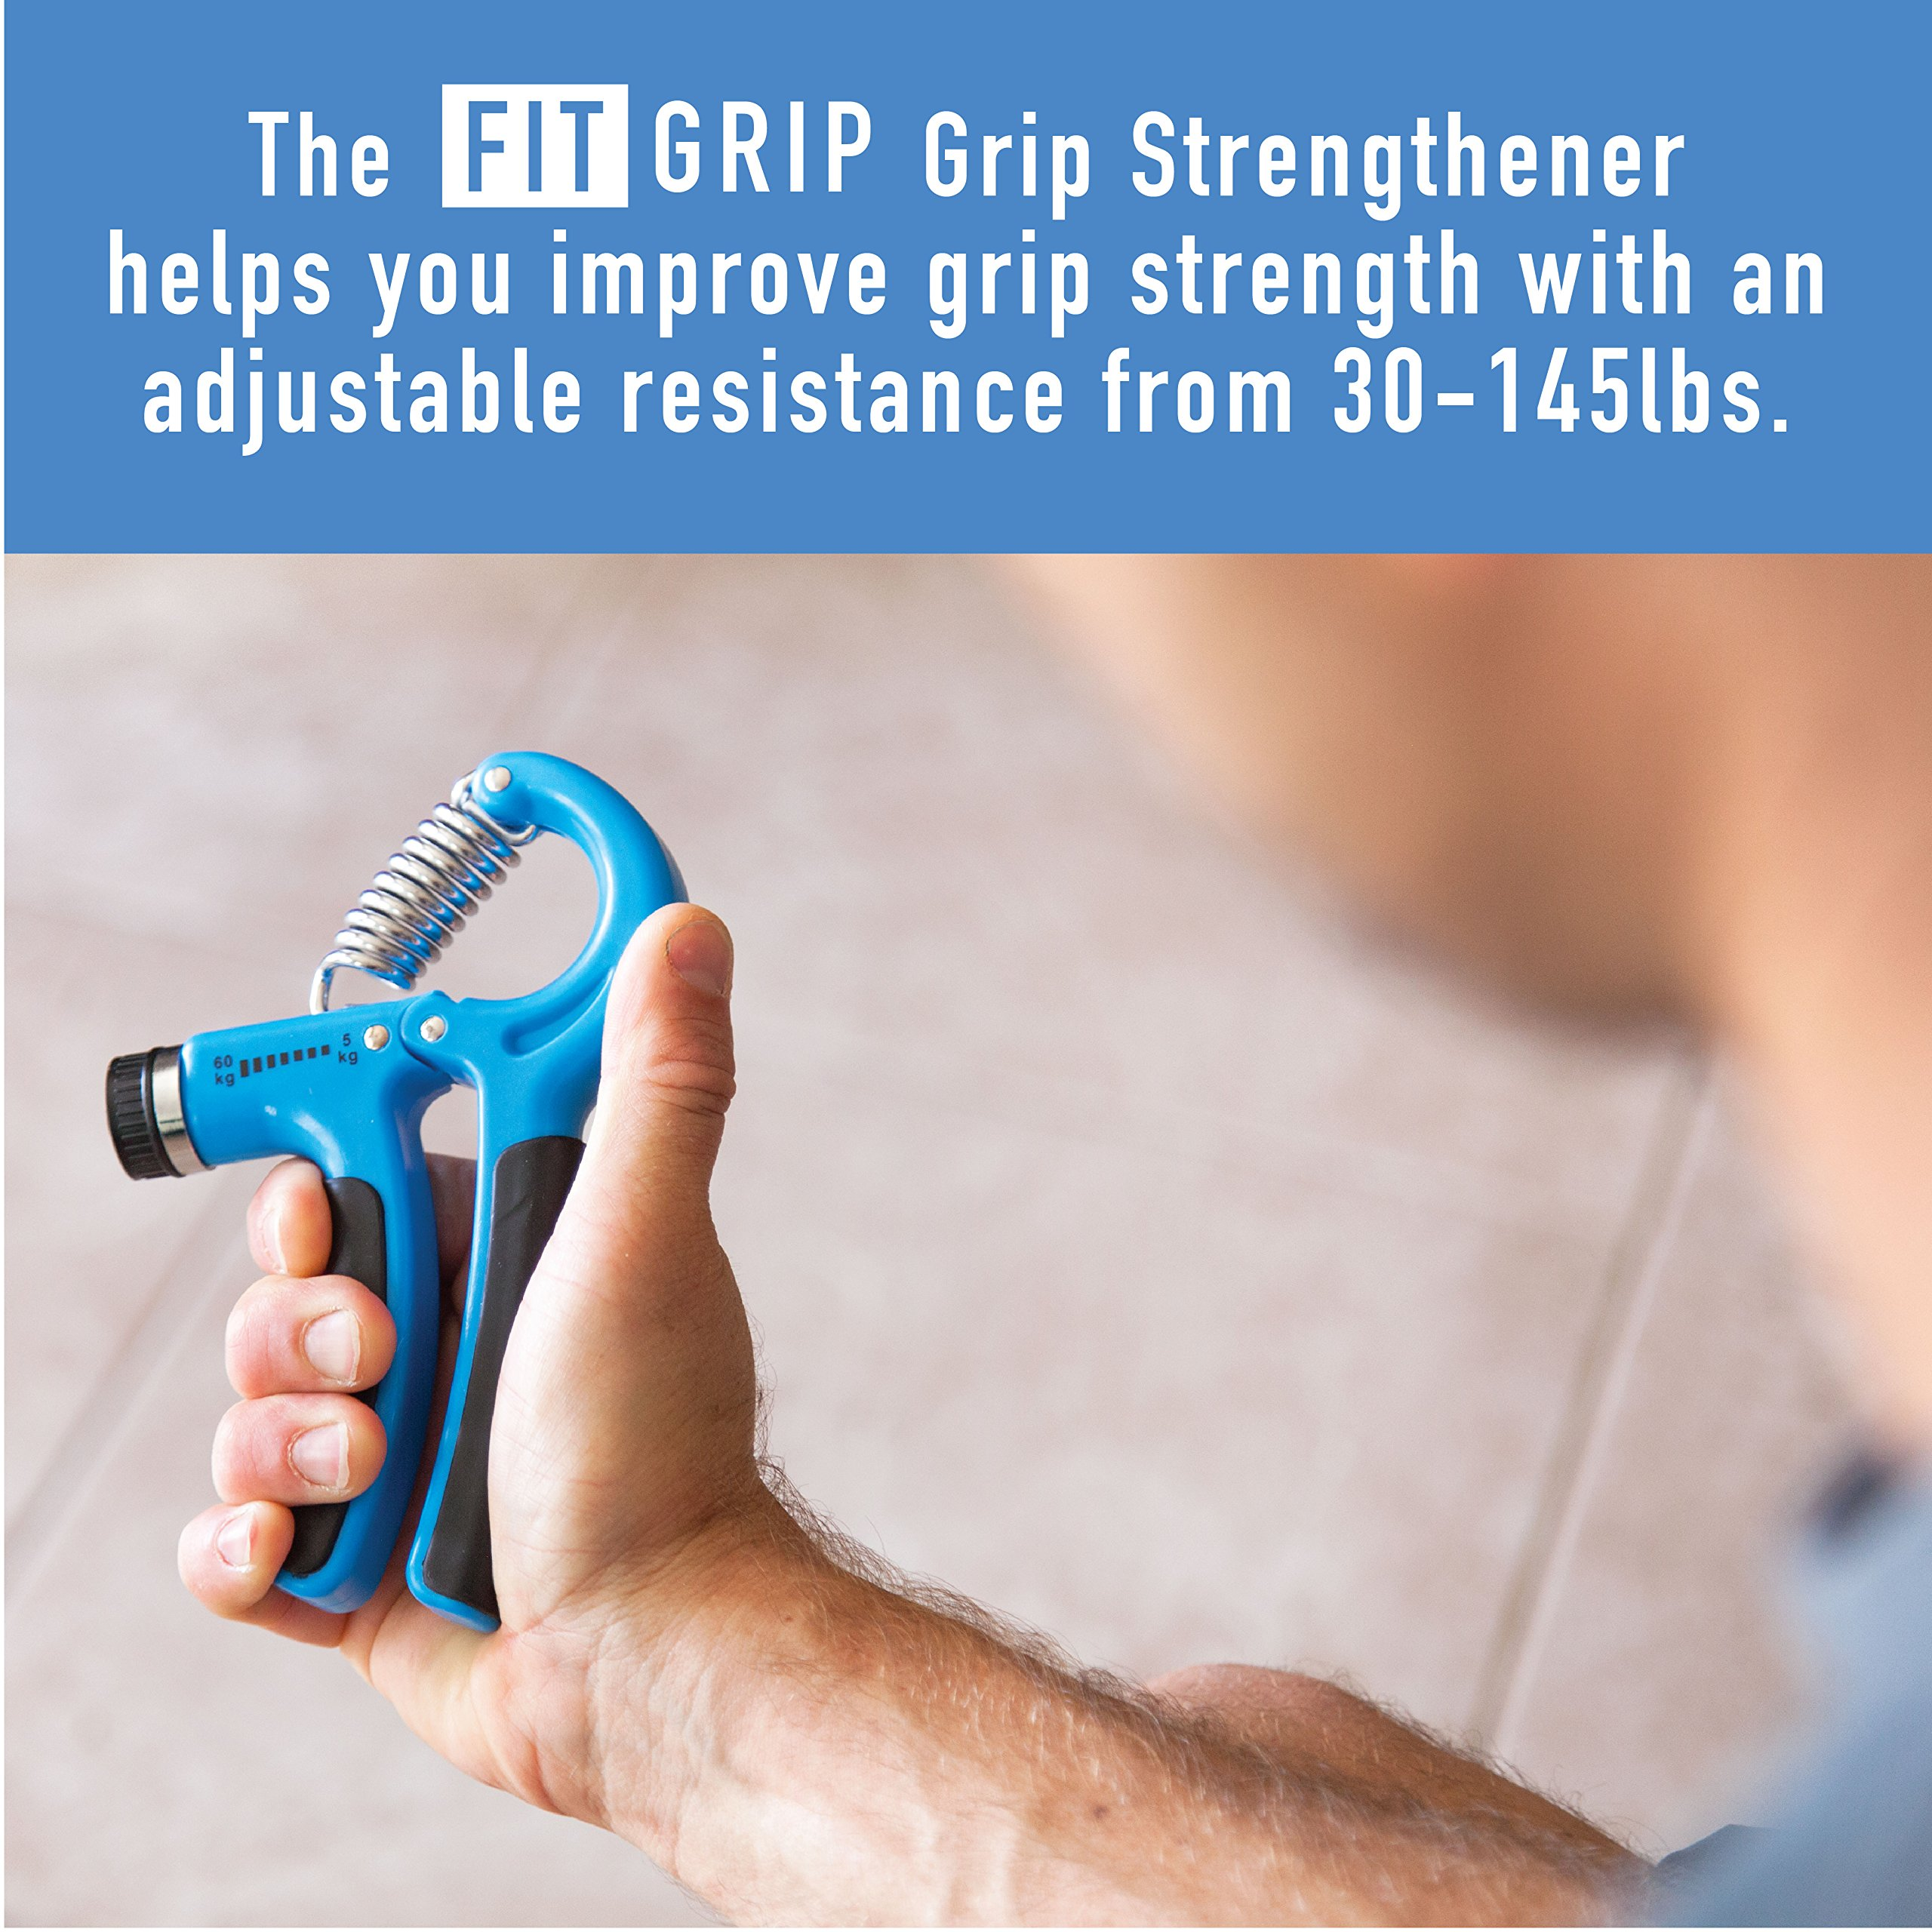 Hand Grip Strength and Forearm Trainer 4-Pack Bundle: Resistance Grip Strengthener, Finger Trainer, Finger Exerciser Stretcher, Grip Ring | Ideal for Athletes, Therapy for Arthritis, Carpal Tunnel by Fit Grip (Image #3)